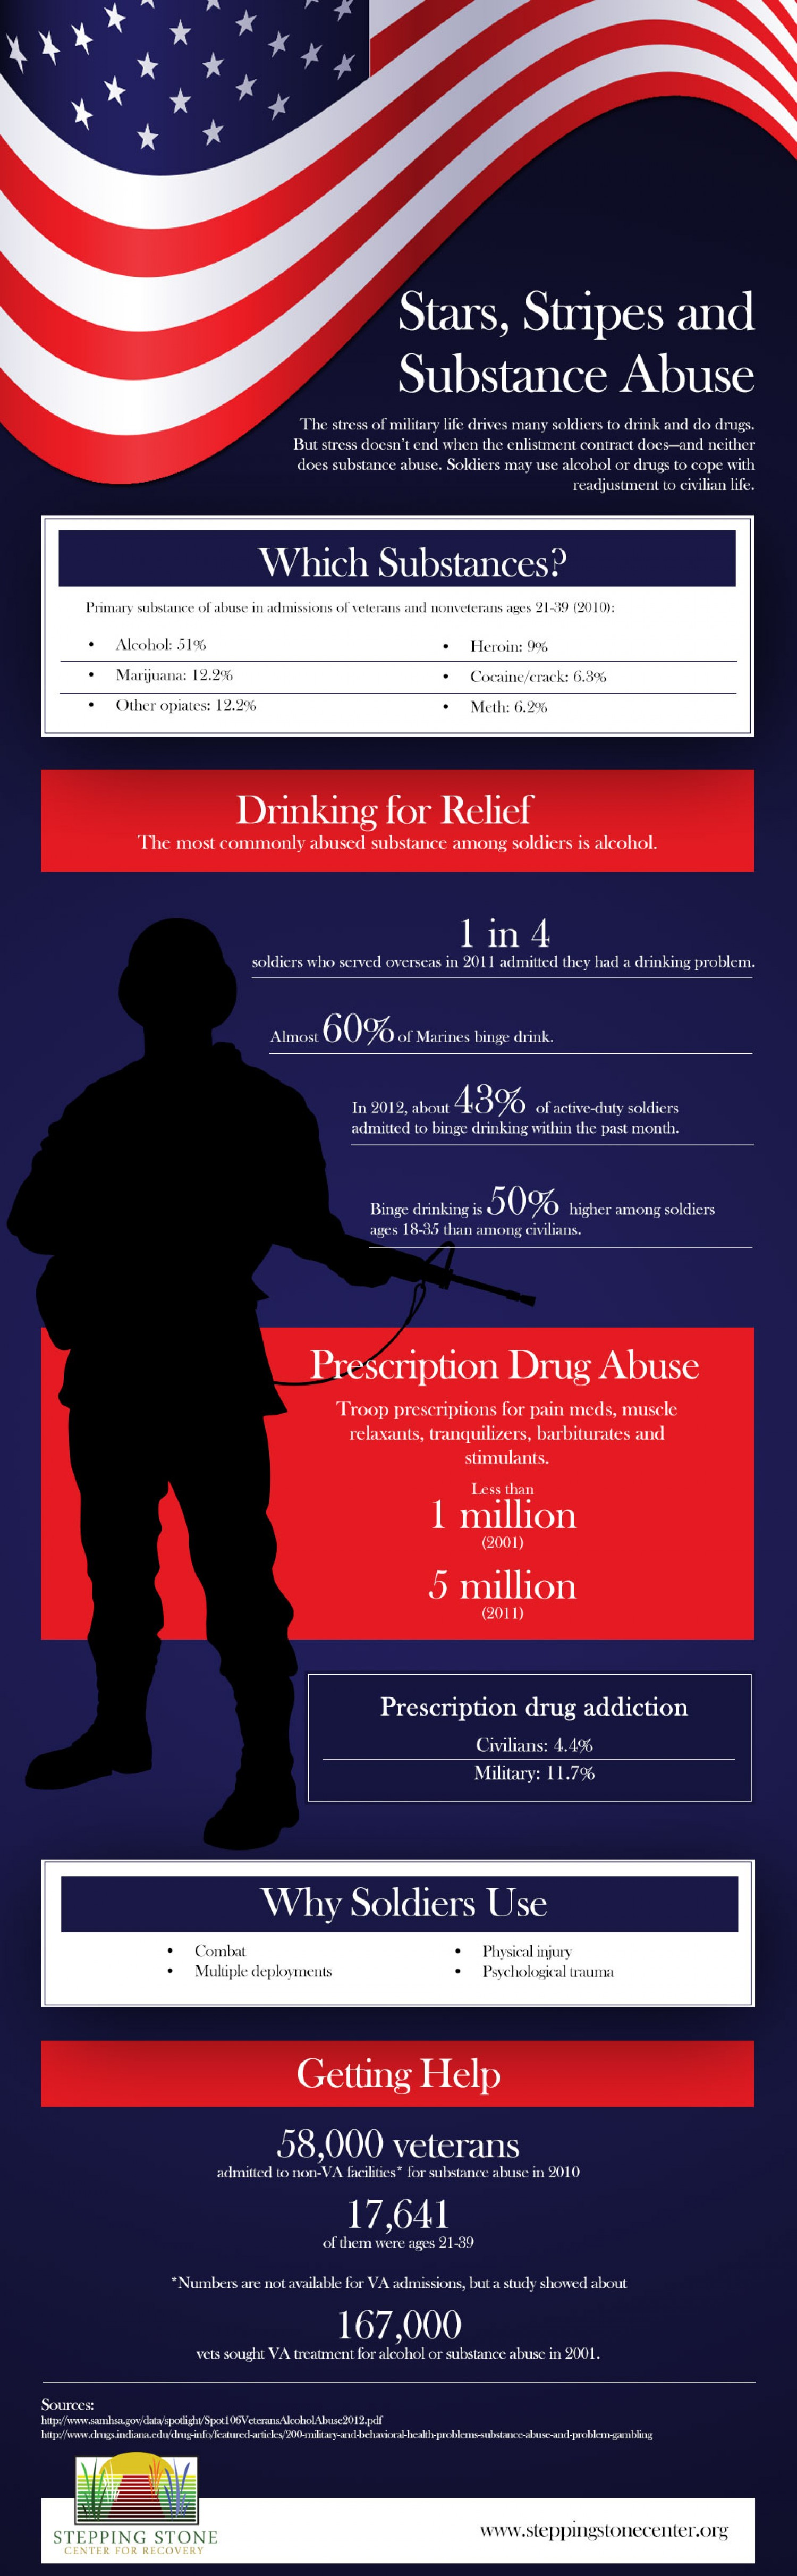 13. Stars stripes and substance abuse